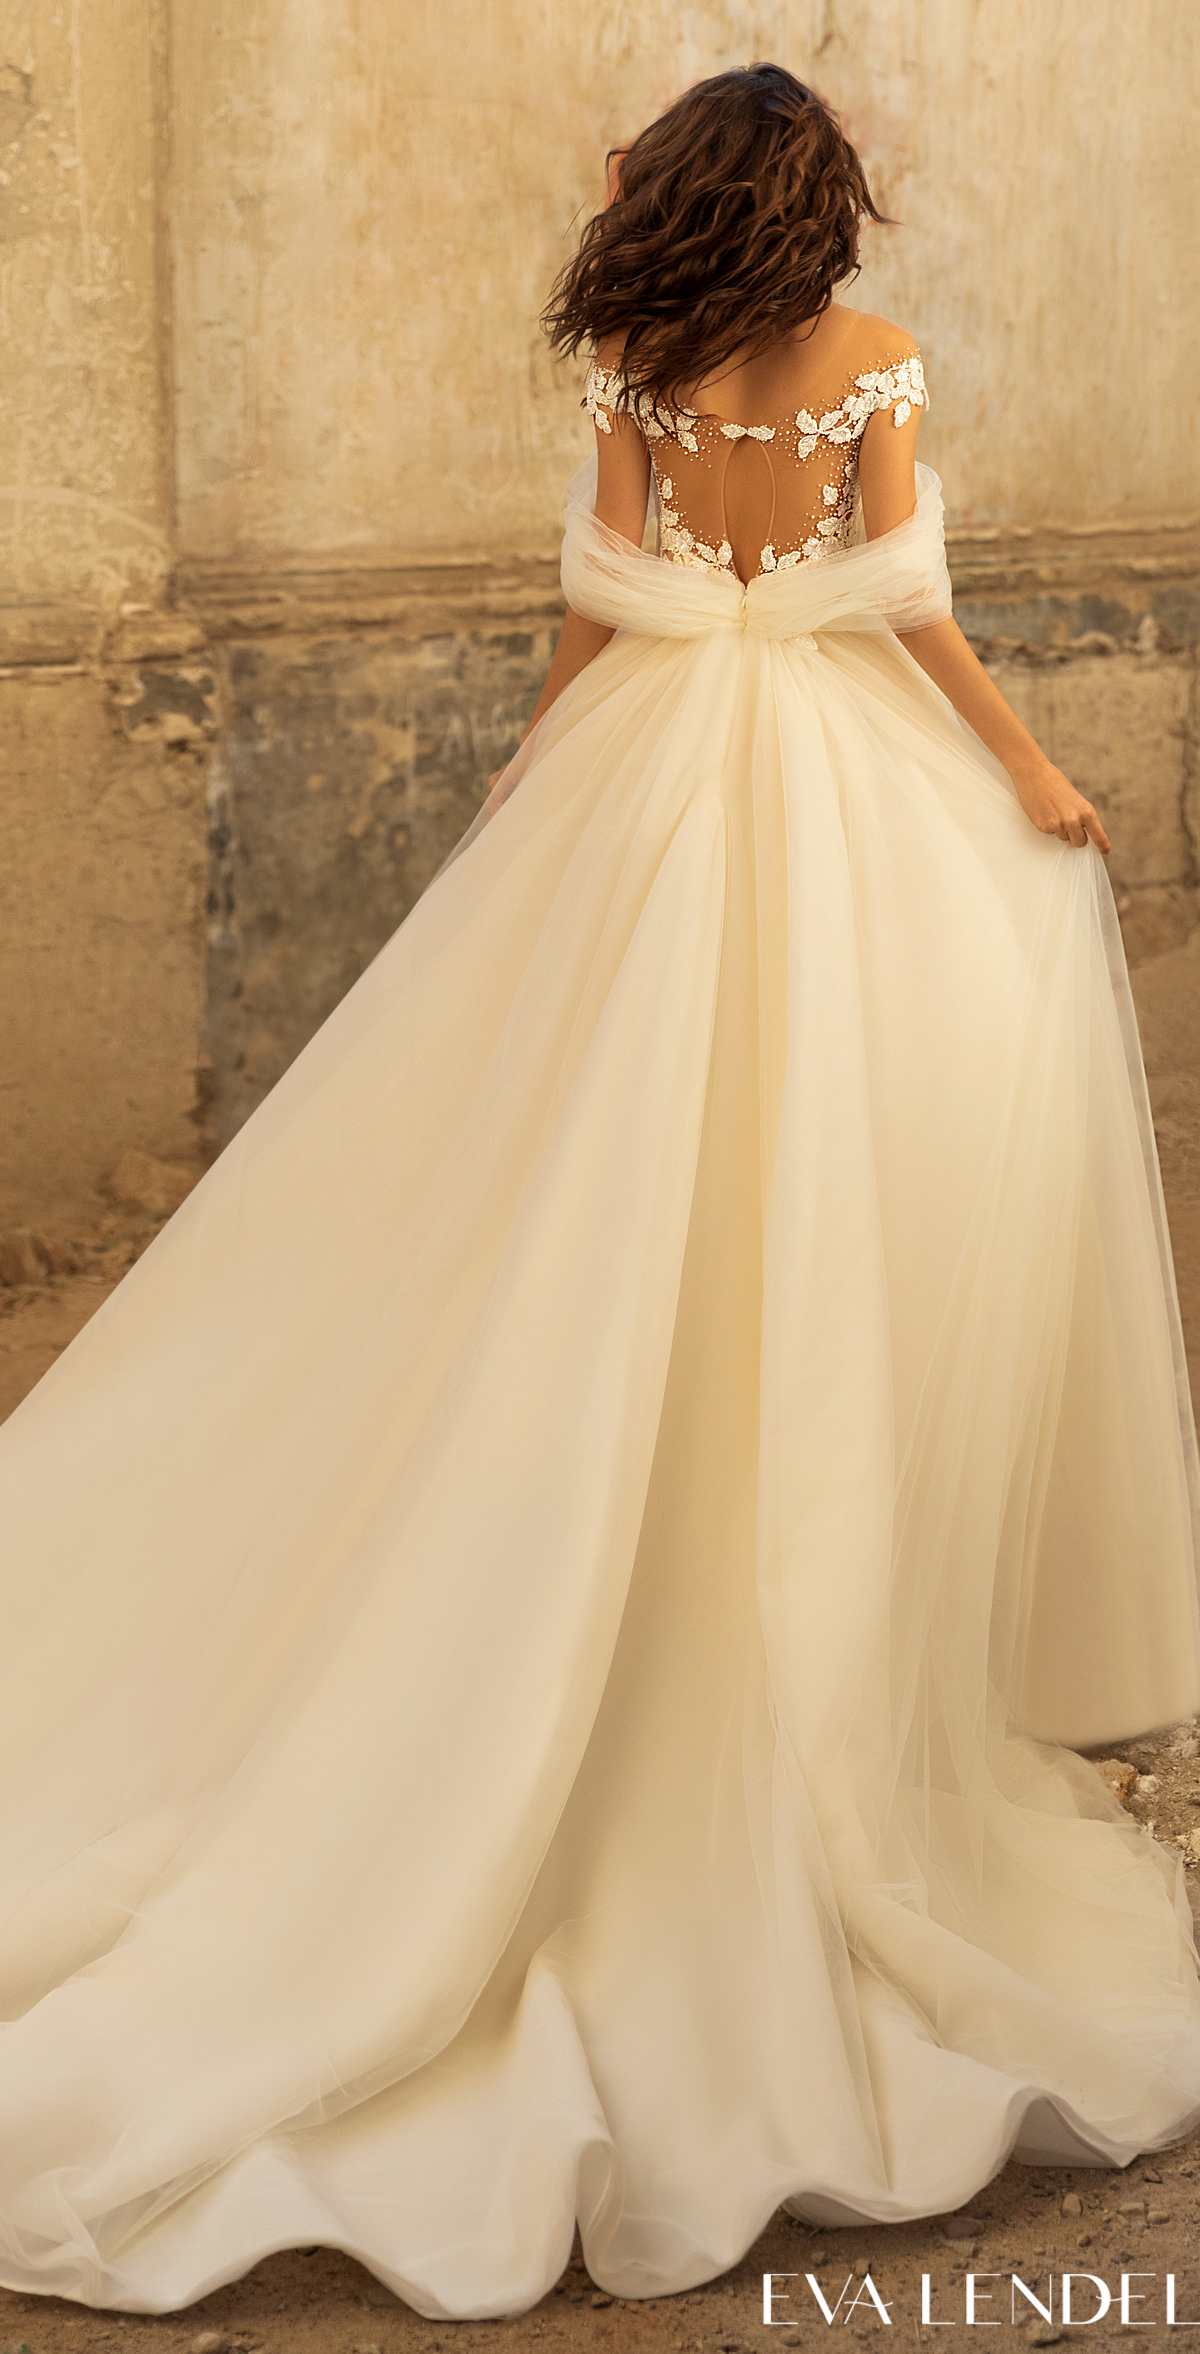 Eva Lendel Wedding Dresses 2021- Golden Hour Collection -Emily